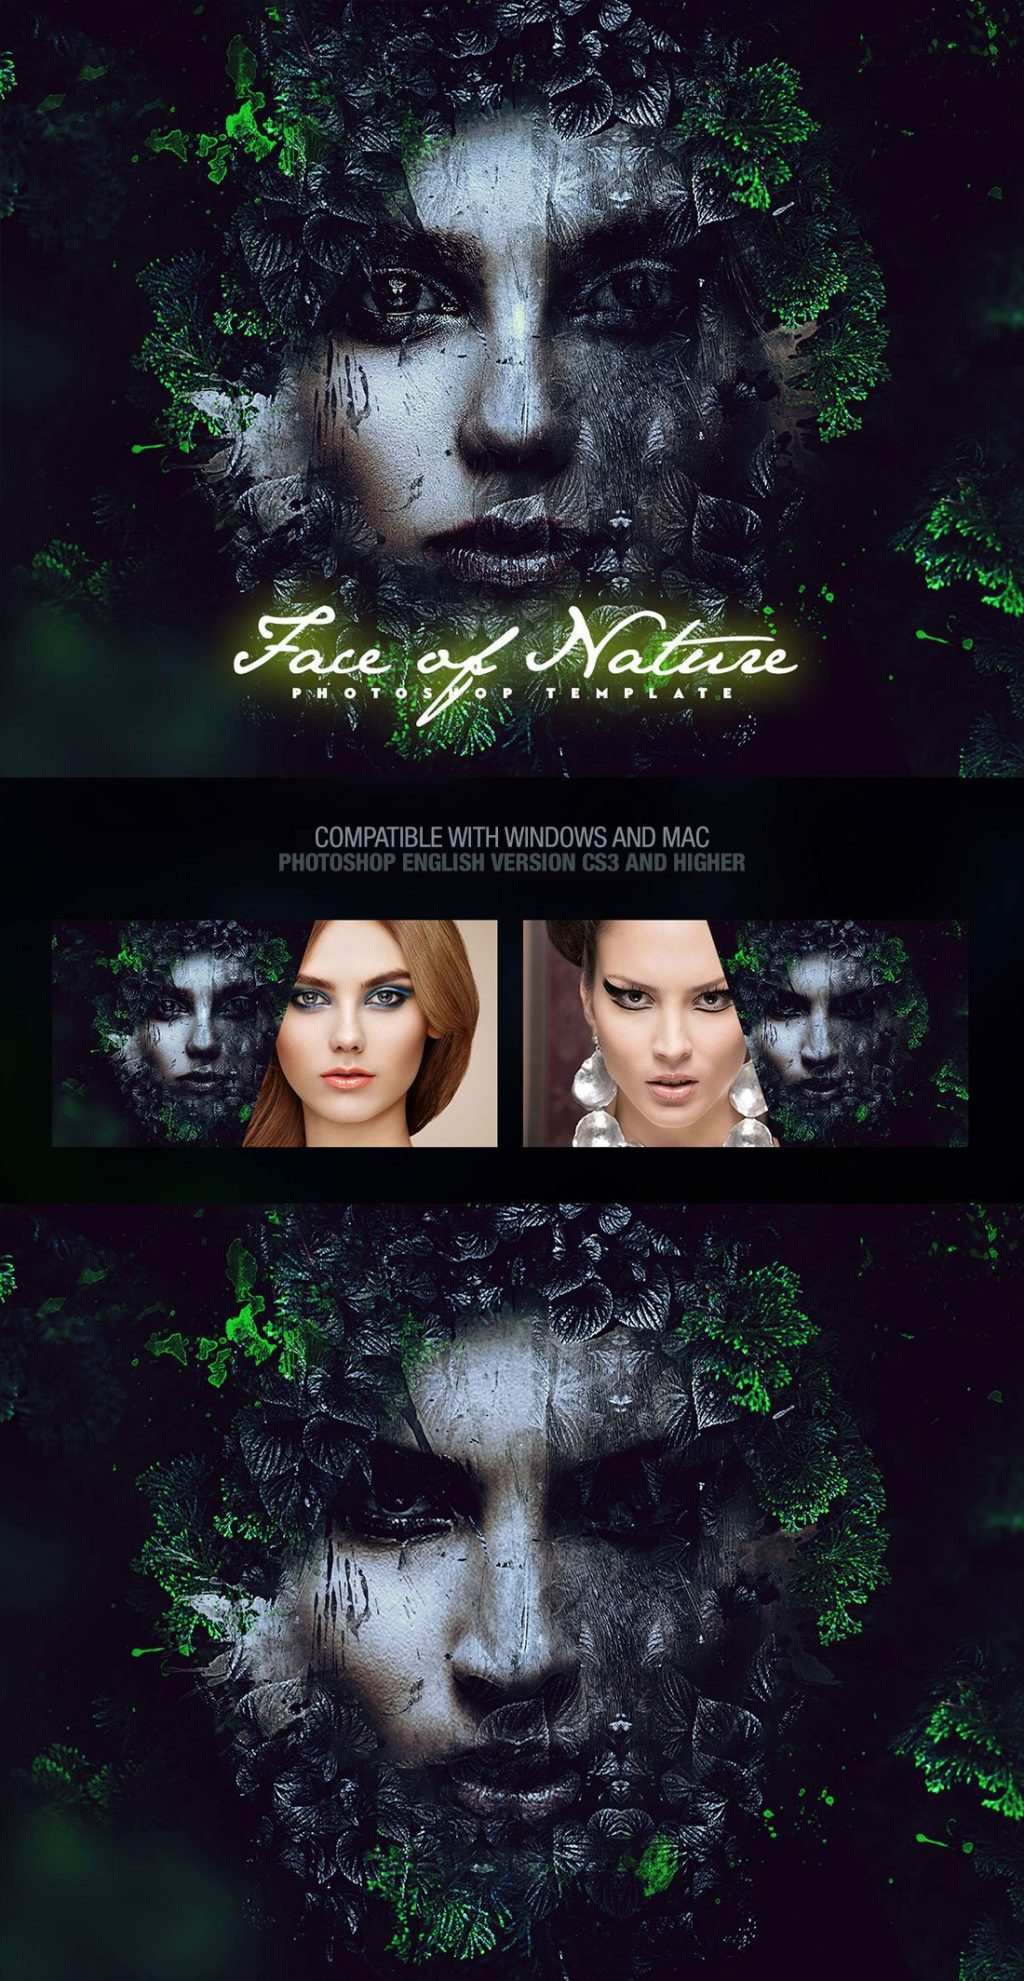 Photoshop Actions & Templates: Artistic Photo FX Bundle - face of nature photo template design by amorjesu